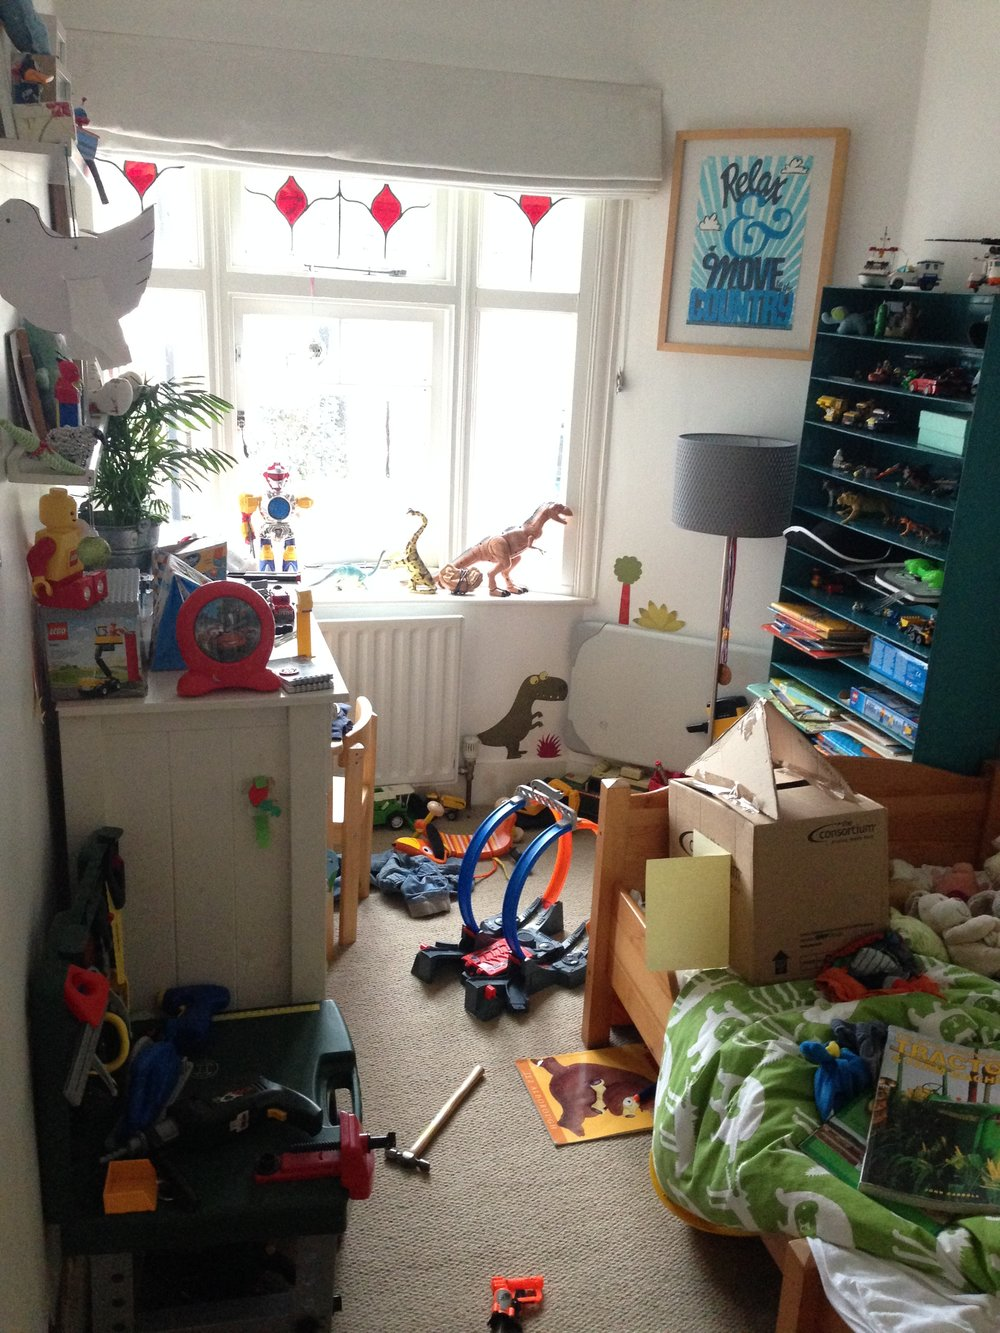 Chaotic children's bedroom